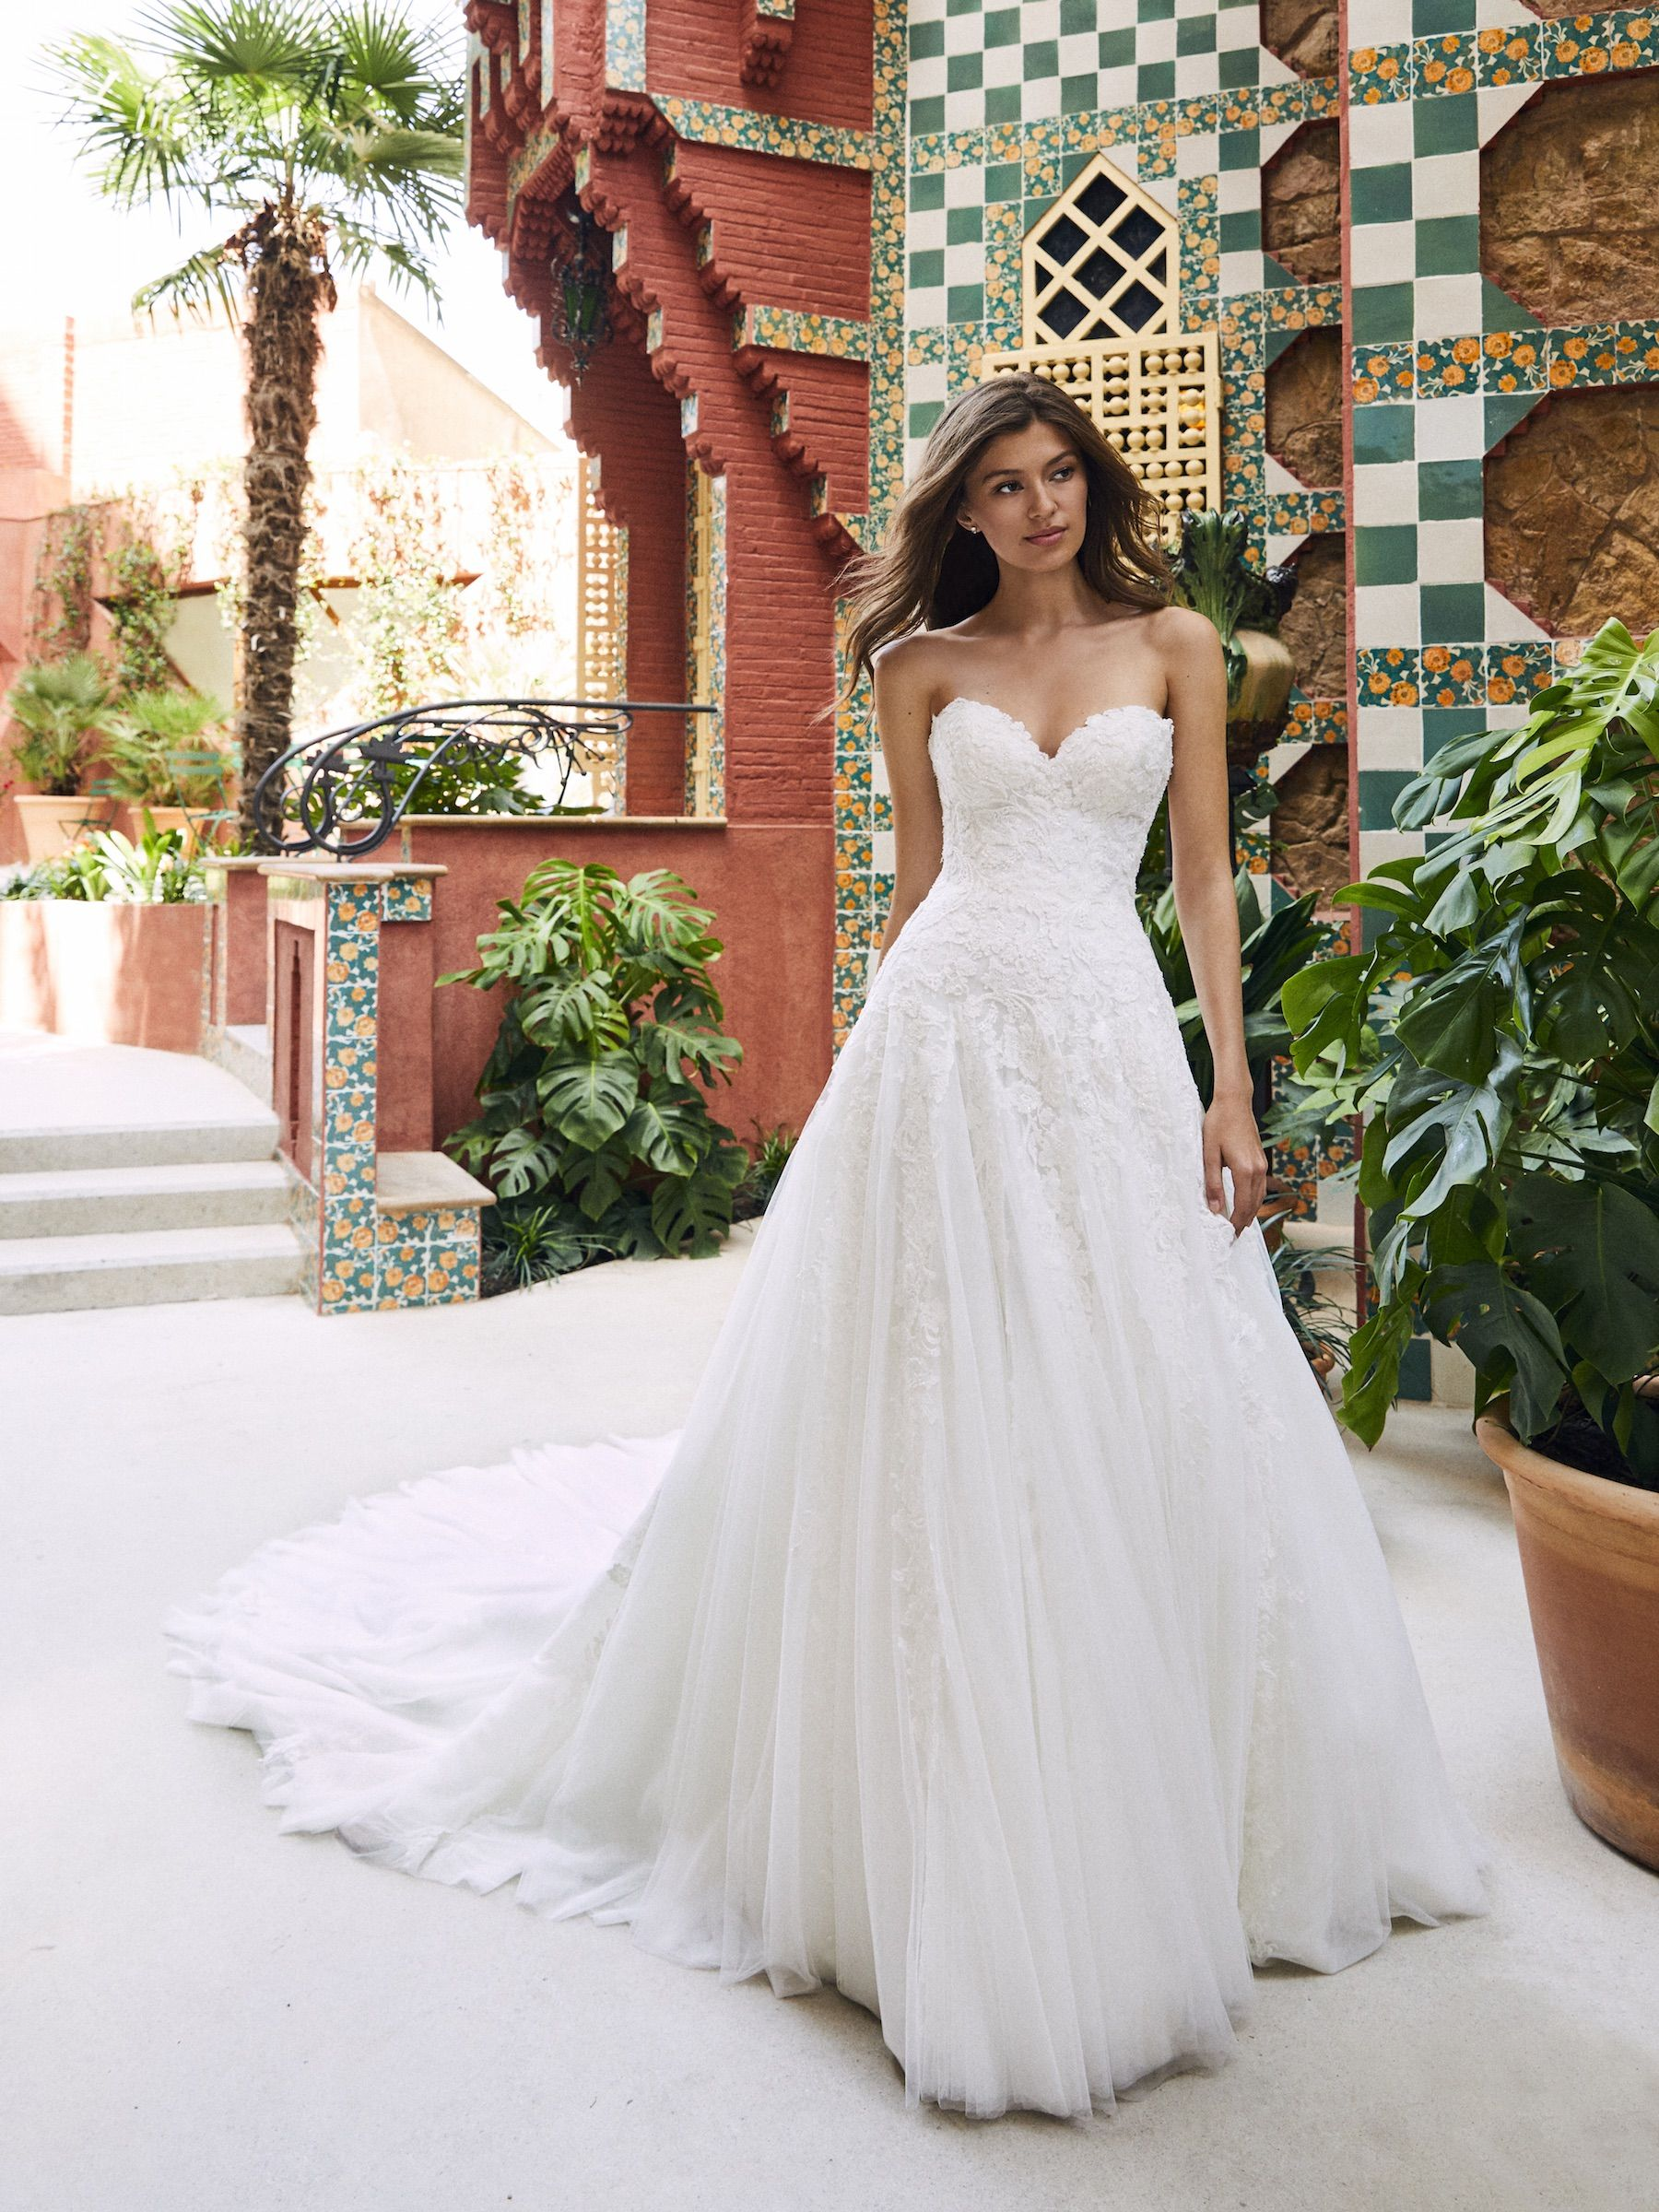 A Line Wedding Dress With Full Skirt Fitted At The Natural Waist Layers Of Tul Strapless Wedding Dress Sweetheart Tulle Wedding Dress Sweetheart Wedding Dress